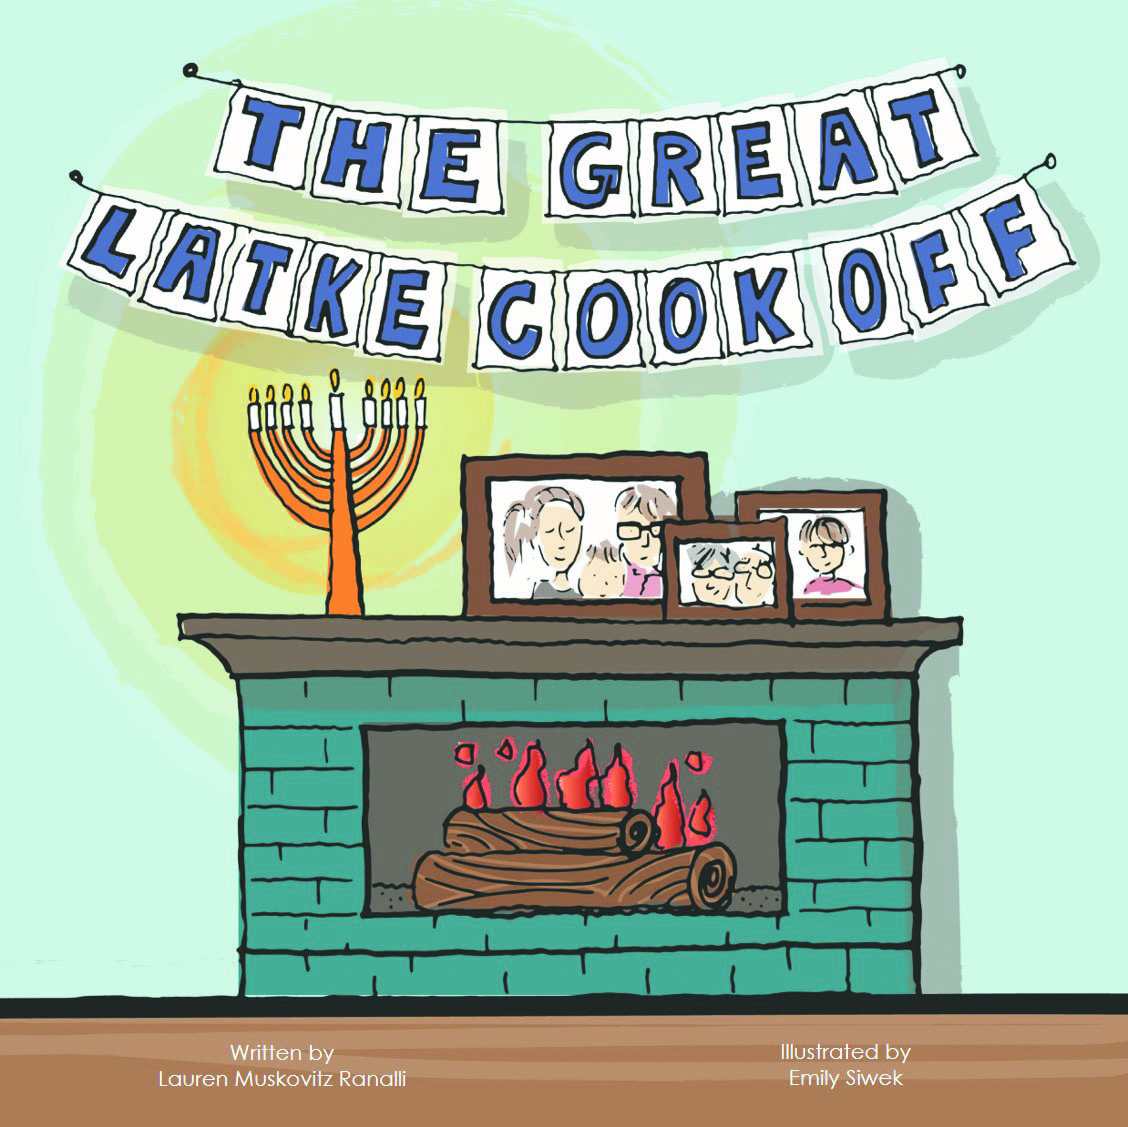 "Illustrated cover of the book The Great Latke Cook Off showing a fireplace and mantel with a lit menorah on it and photographs of the family and the words ""The Great Latke Cook Off"" spelled out on a banner above."